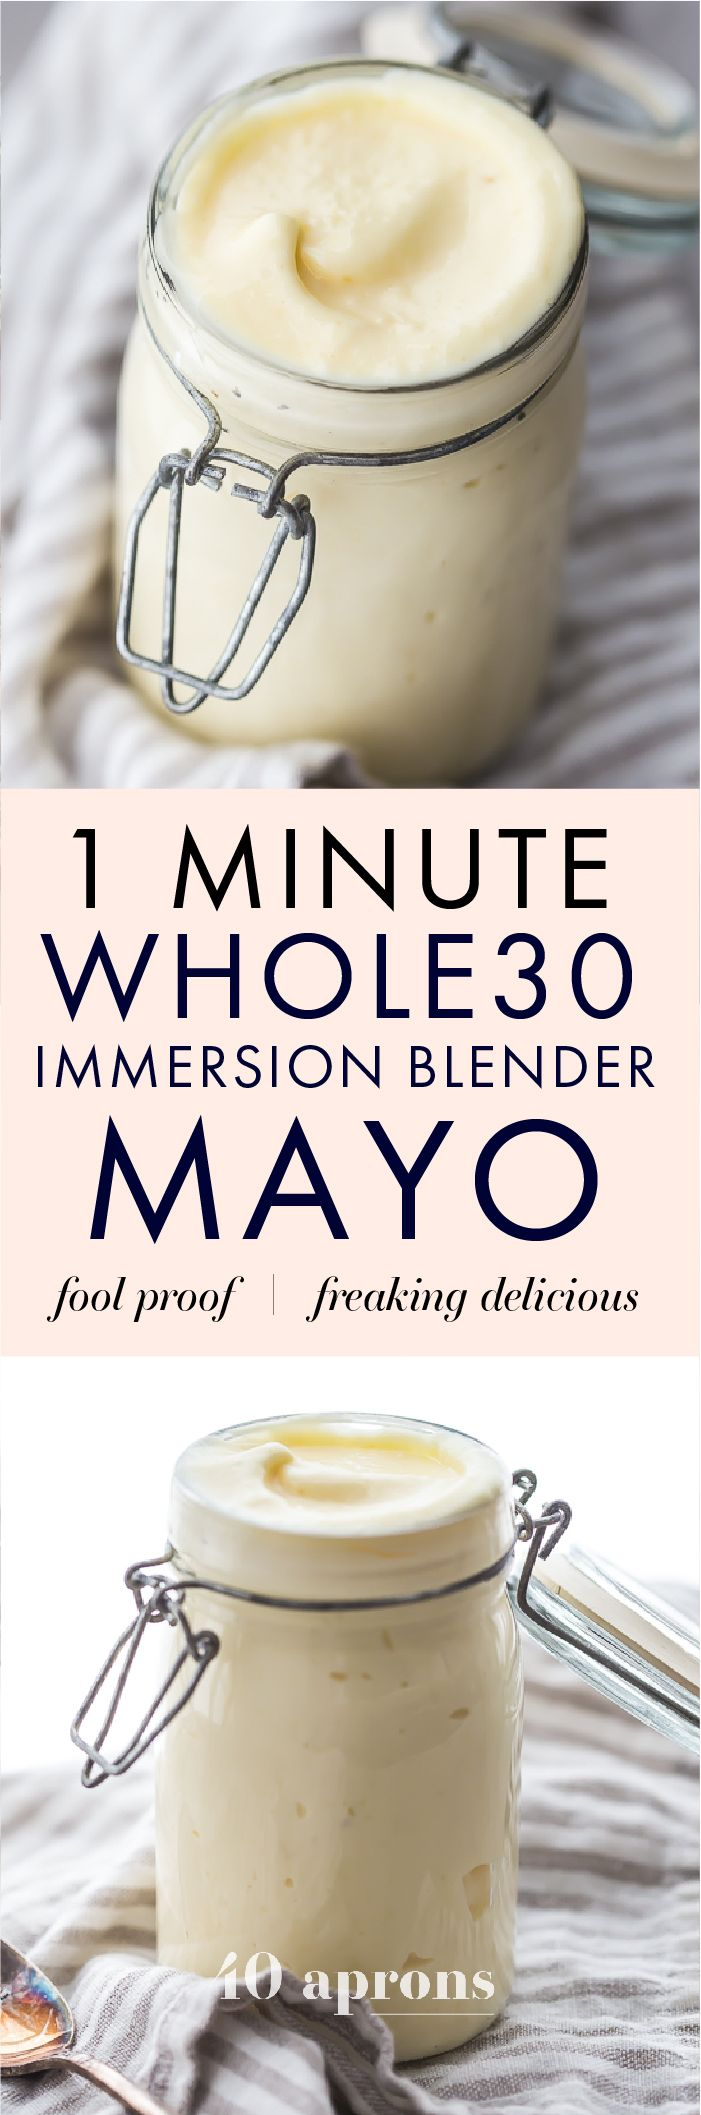 This Whole30 immersion blender mayo is ready in just about 60 seconds - totally life-changing! It's rich and so versatile and pretty darn fool-proof, made with only a few ingredients. You'll be obsessed with this one-minute Whole30 mayo as soon as you try it. Every single Whole30 needs this Whole30 immersion blender mayo recipe, I promise. You're already spending enough time in the kitchen during a round, so convert your Whole30 mayo recipe to a Whole30 immersion blender mayo recipe, and…